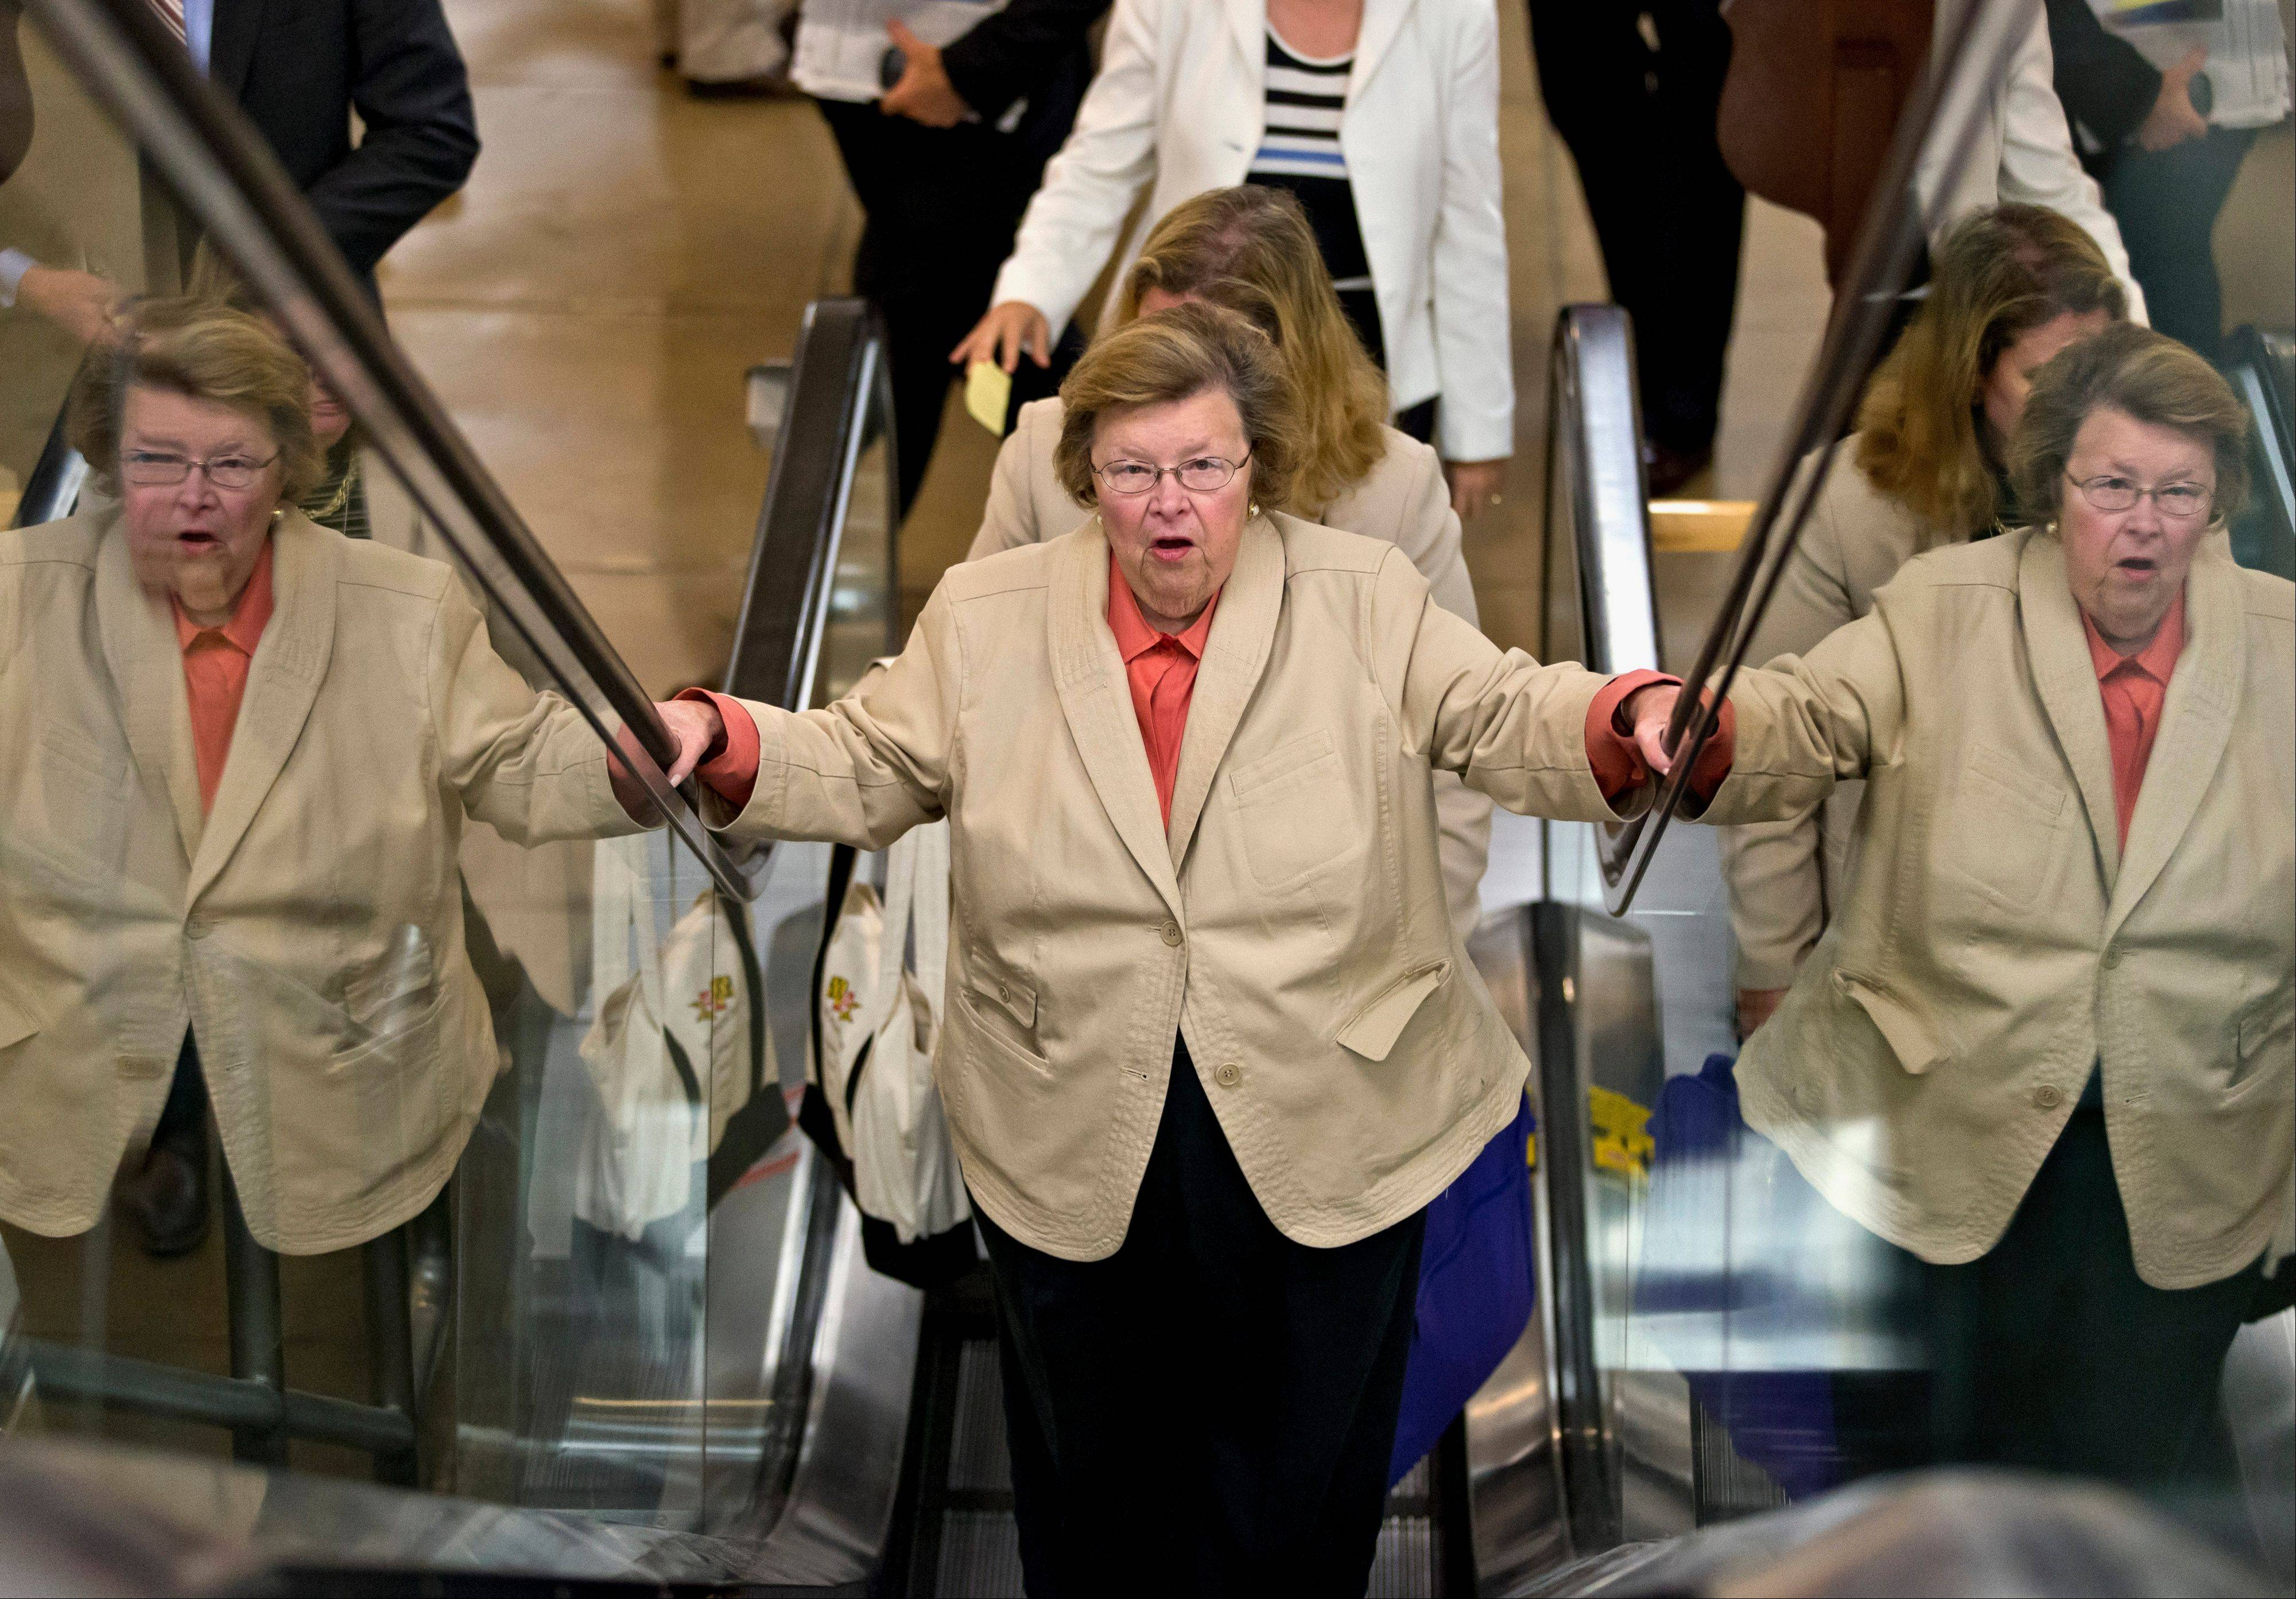 Senate Appropriations Committee Chair Sen. Barbara Mikulski, a Maryland Democrat, rides an escalator in the Capitol Wednesday, as senators rushed to the floor for a vote to end debate on the Democrats� plan to restore lower interest rates on student loans. Lawmakers failed to muster the necessary 60 votes to overcome a procedural hurdle.